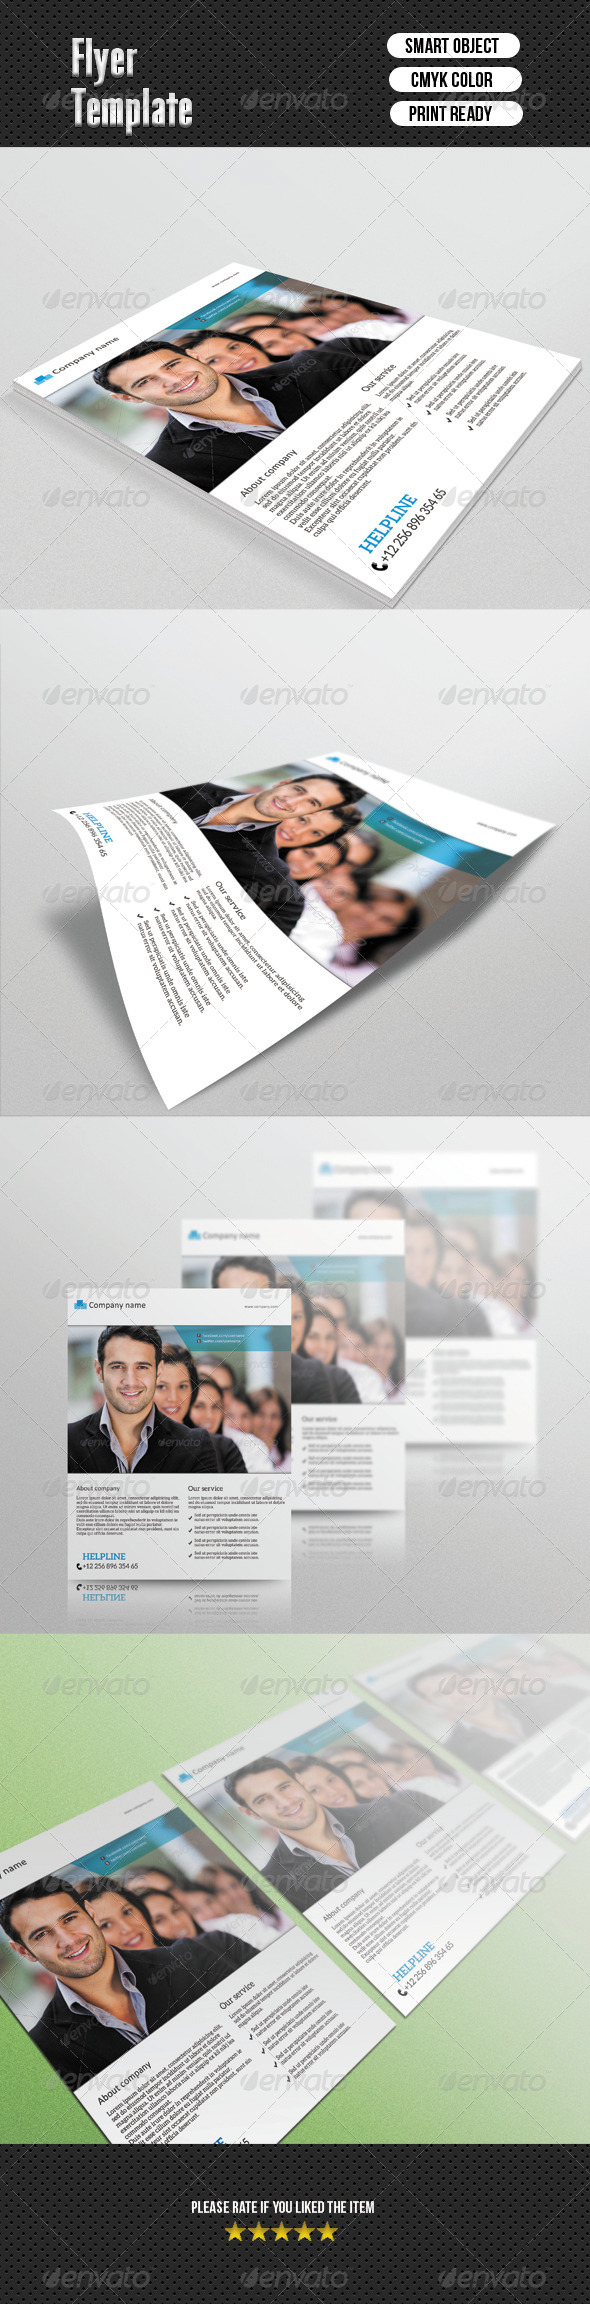 GraphicRiver Business Flyer 6651773